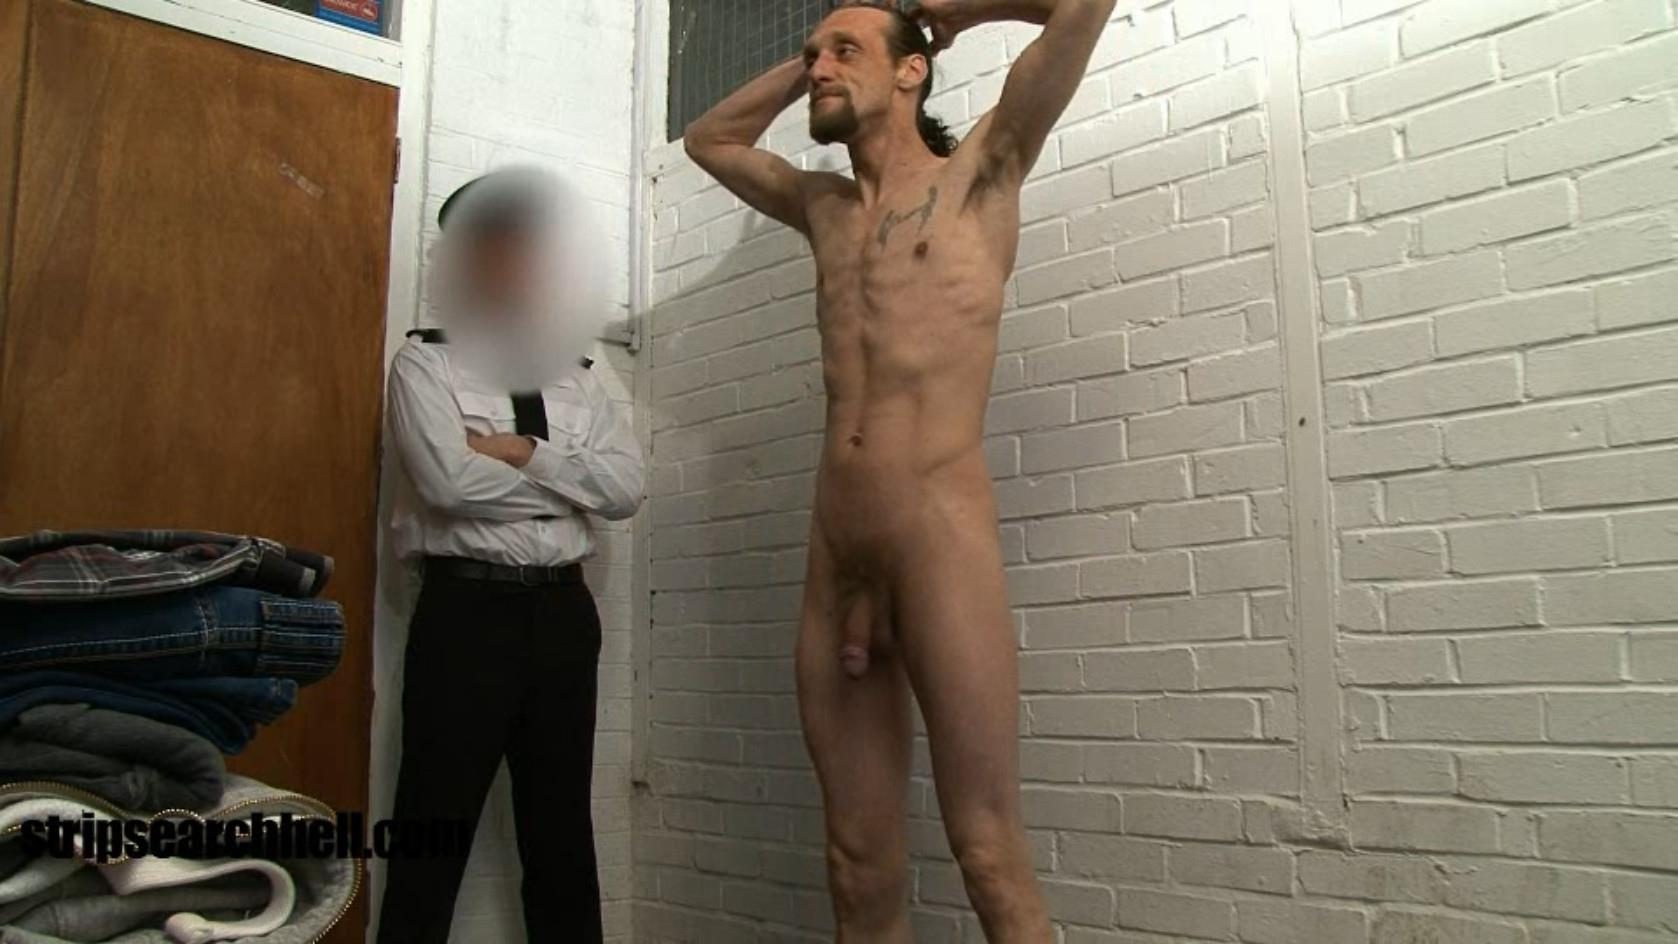 Prision Strip Search Pictures Guy With A Big Cock 05 Hidden Prison Strip Search Video And A Guy With A Big Dick